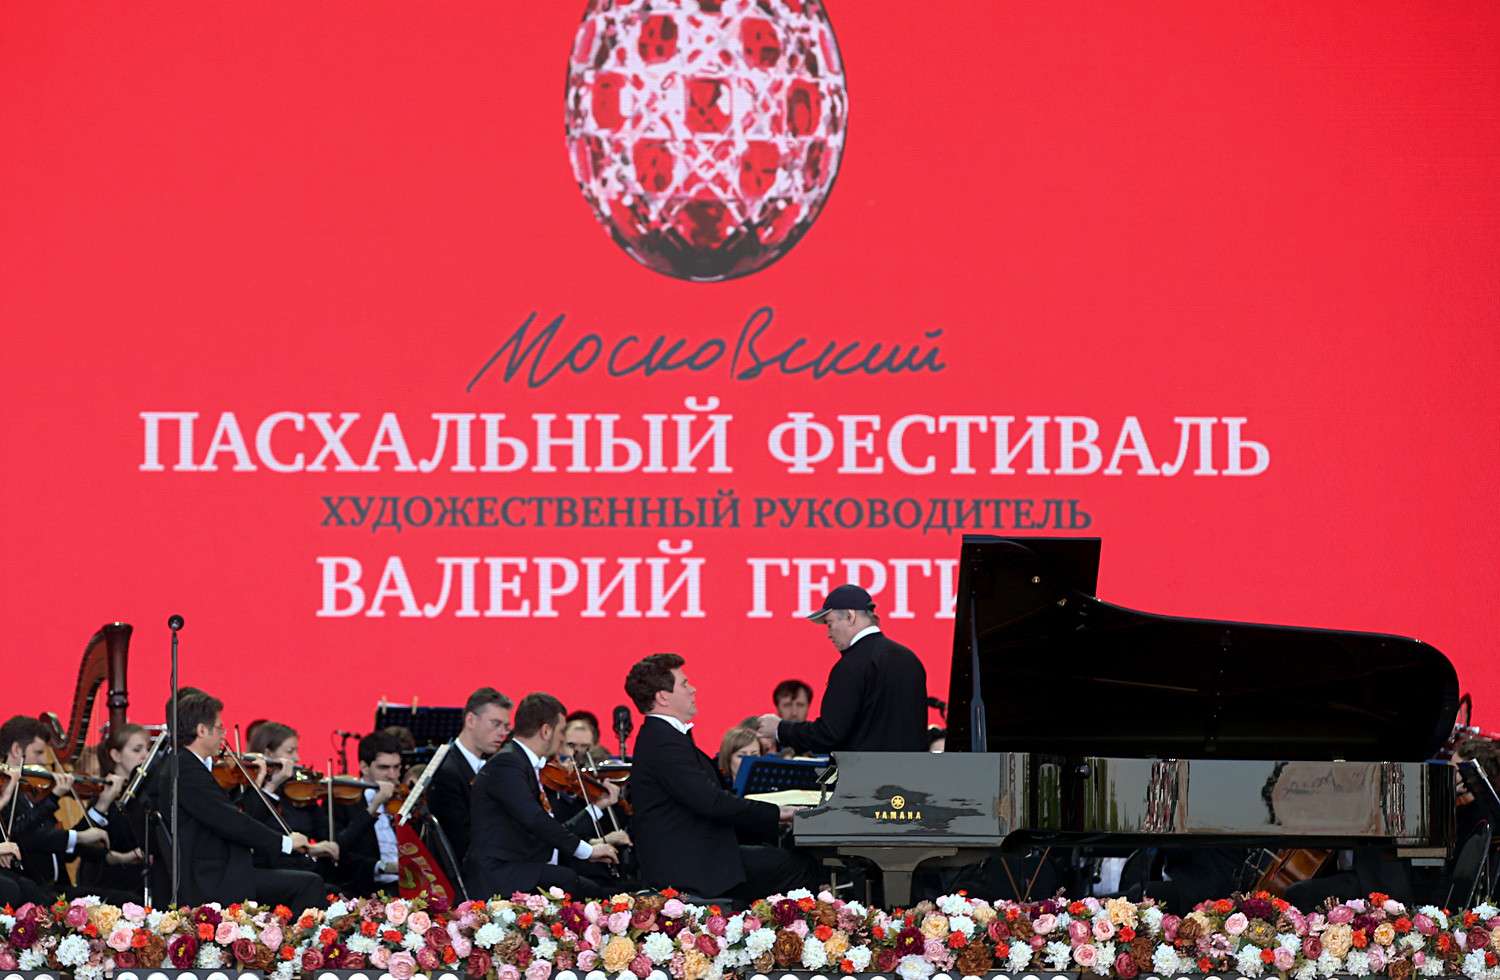 Valery Gergiev, Russian conductor, general director and artistic director of the Mariinsky Theatre, and Russian pianist Denis Matsuev perform during a Easter Festival on Moscow's Poklonnaya Hill.